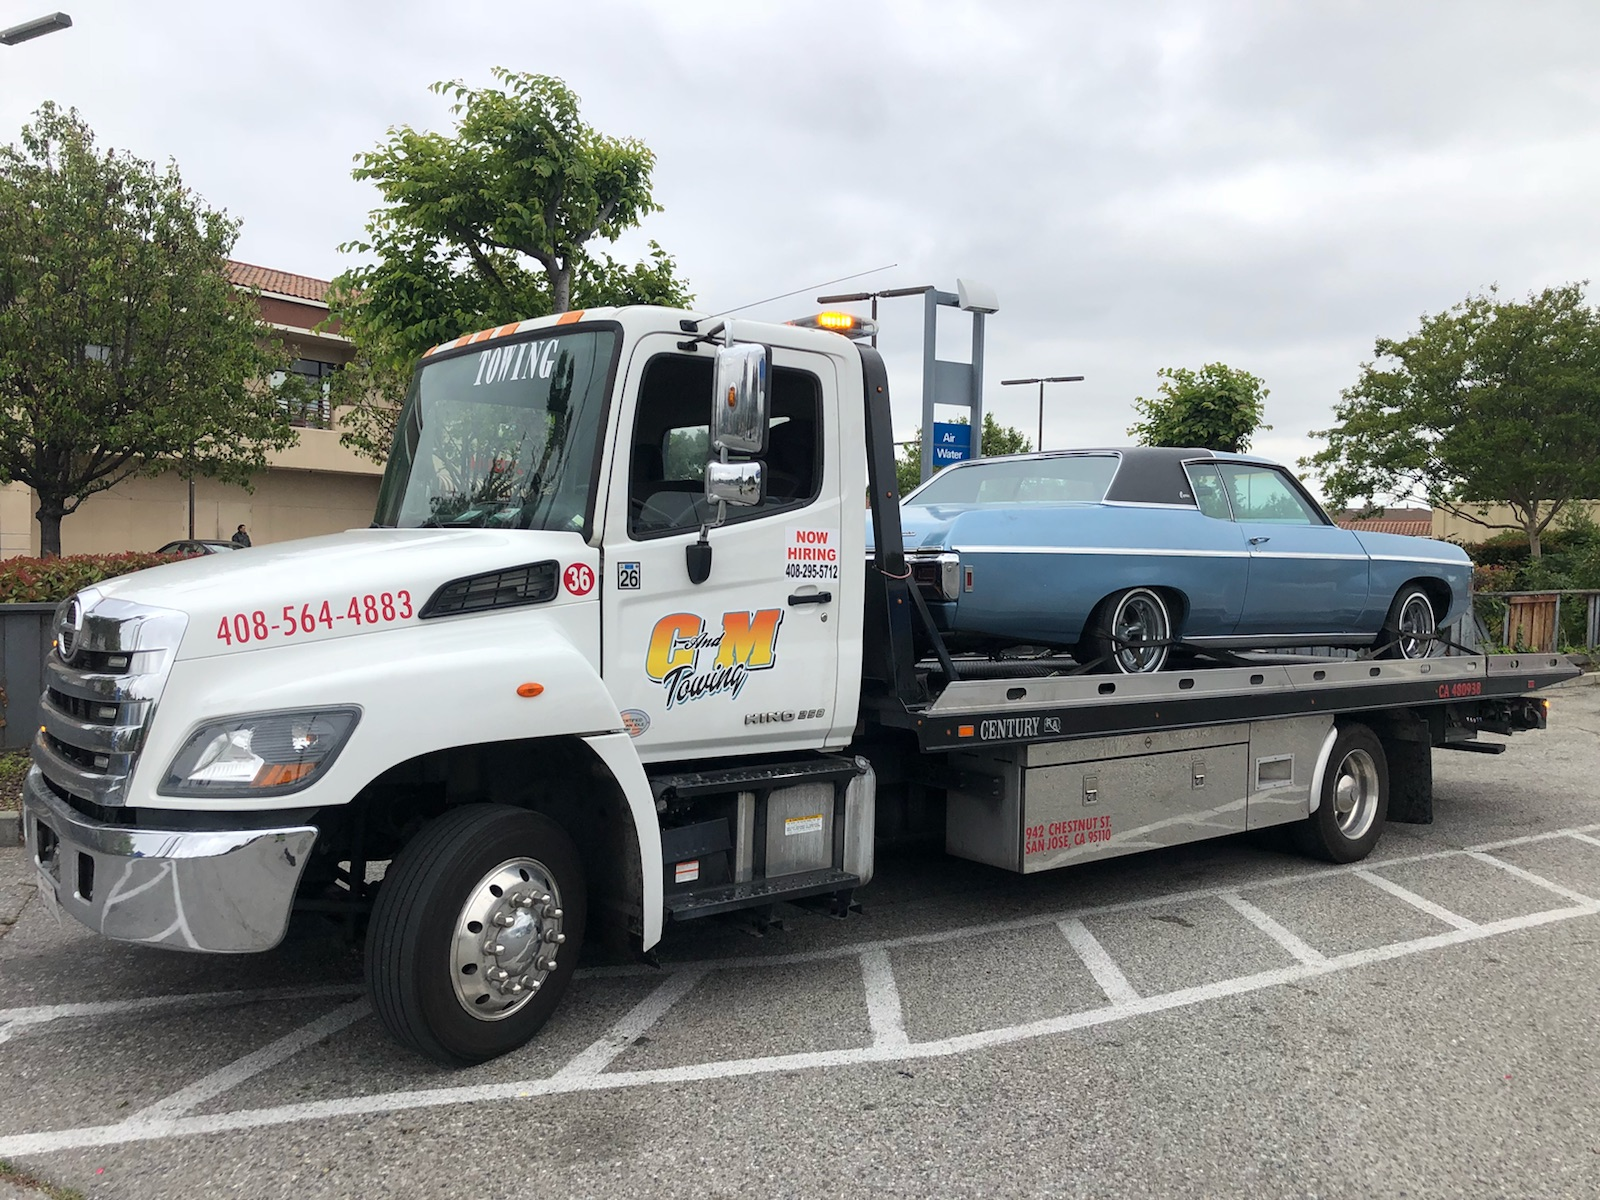 Acquiring Important Factors about Truck Towing Service